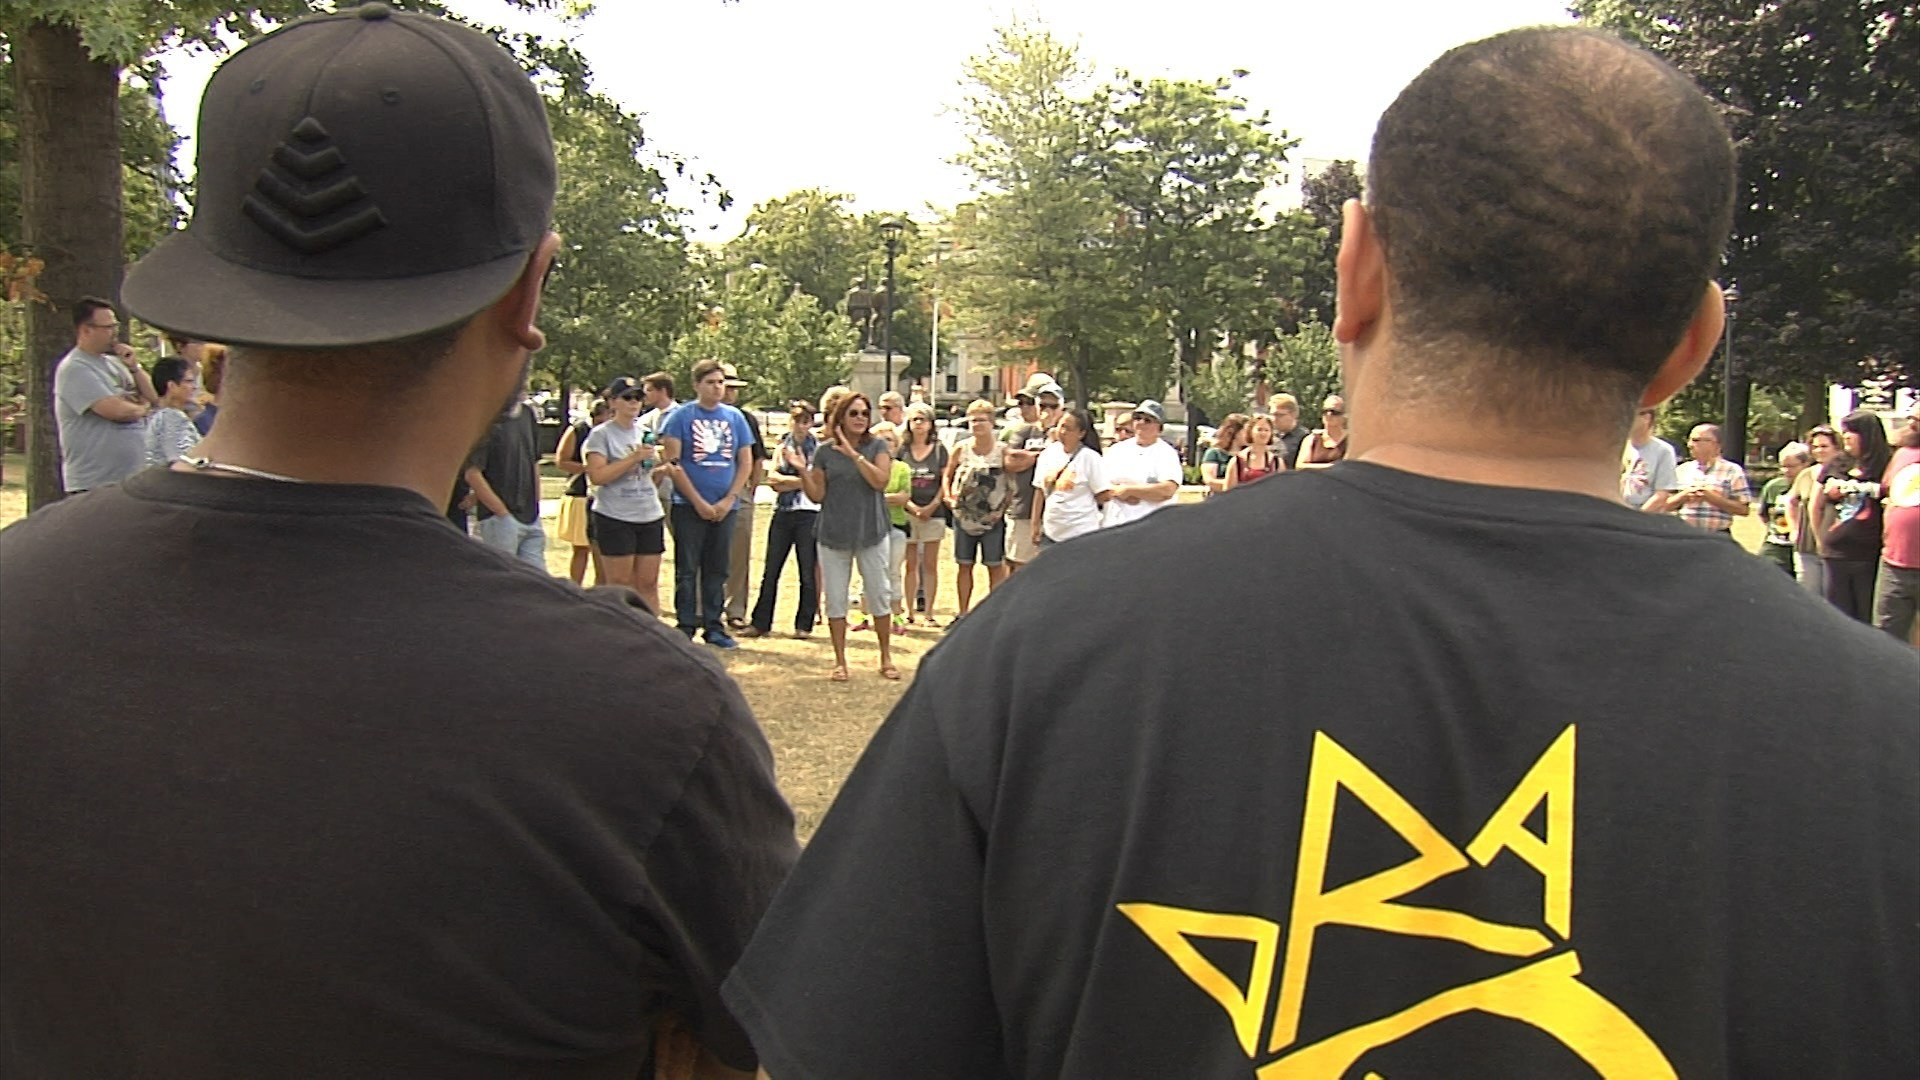 Erie holds rally for Charlottesville